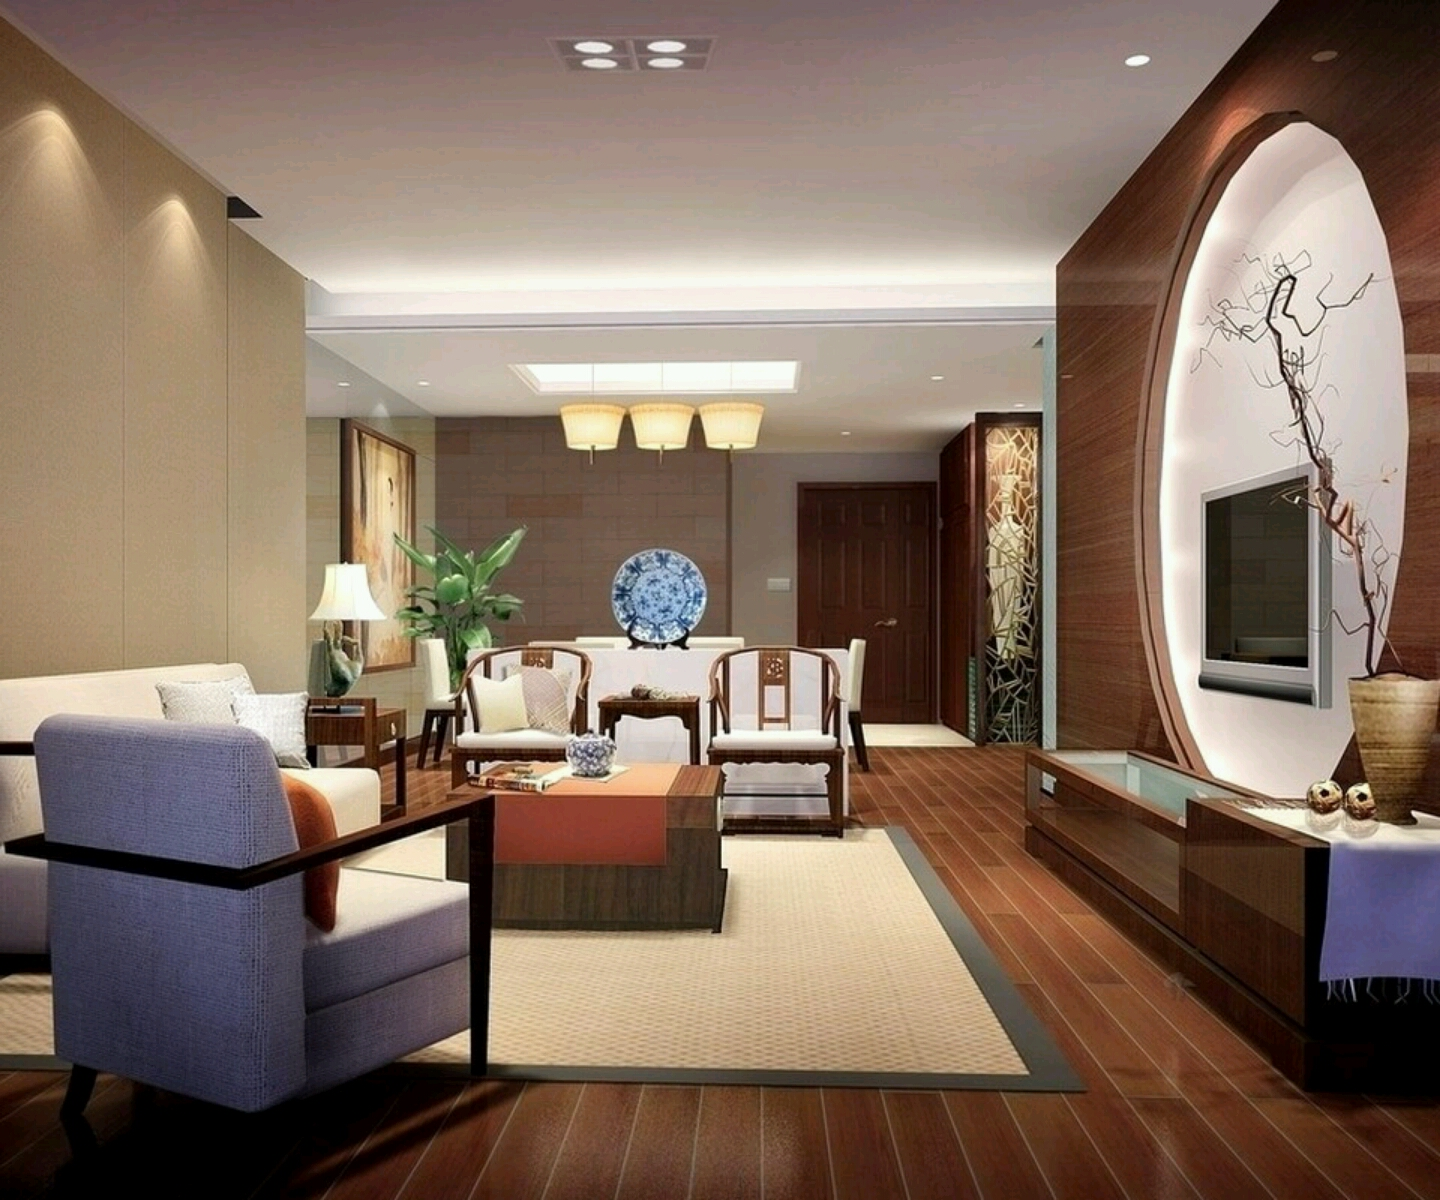 Luxury homes interior decoration living room designs ideas for Home interior living room